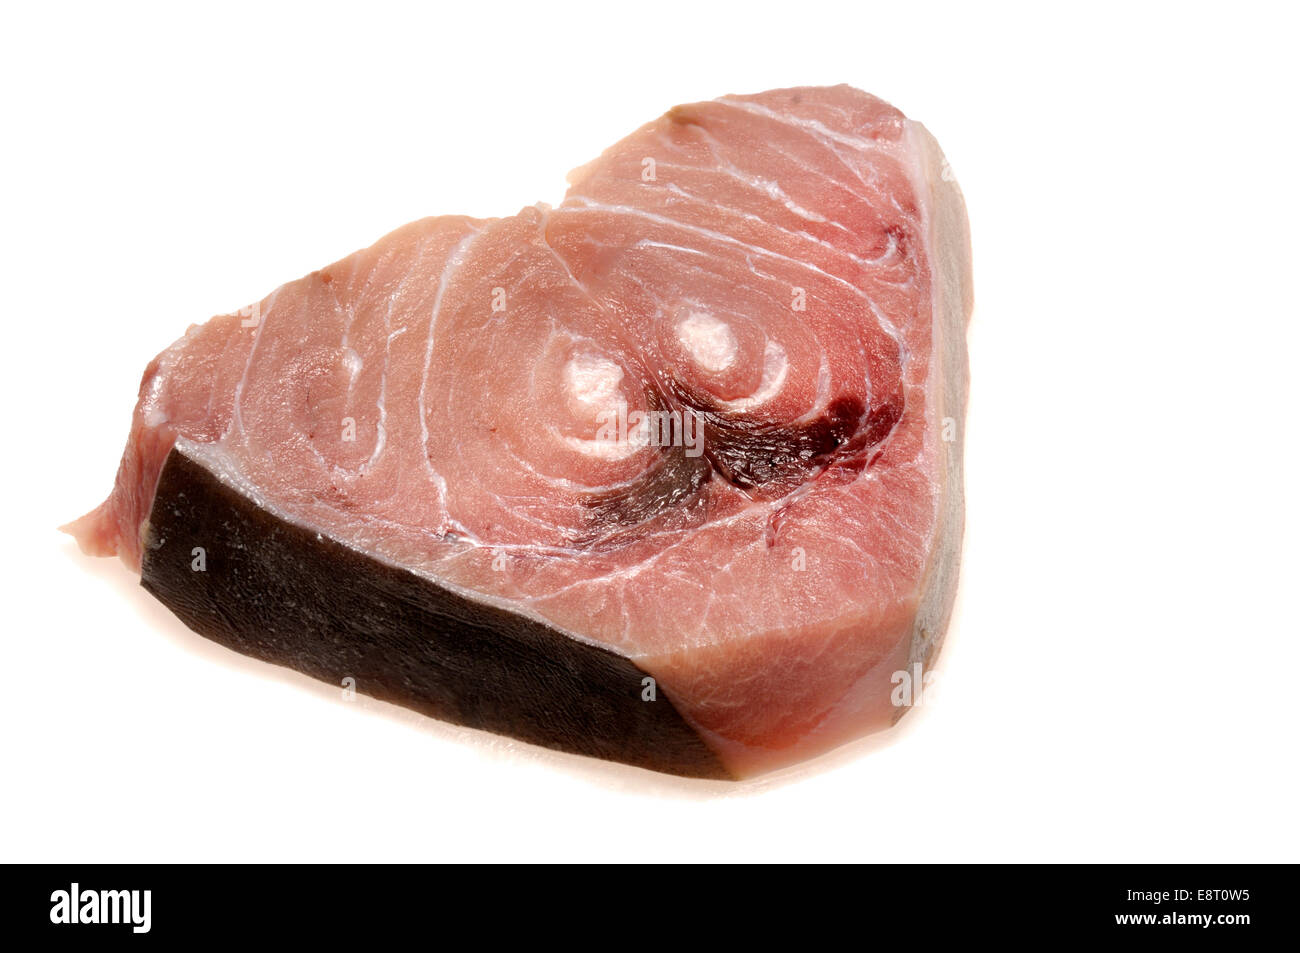 Swordfish steak - Stock Image